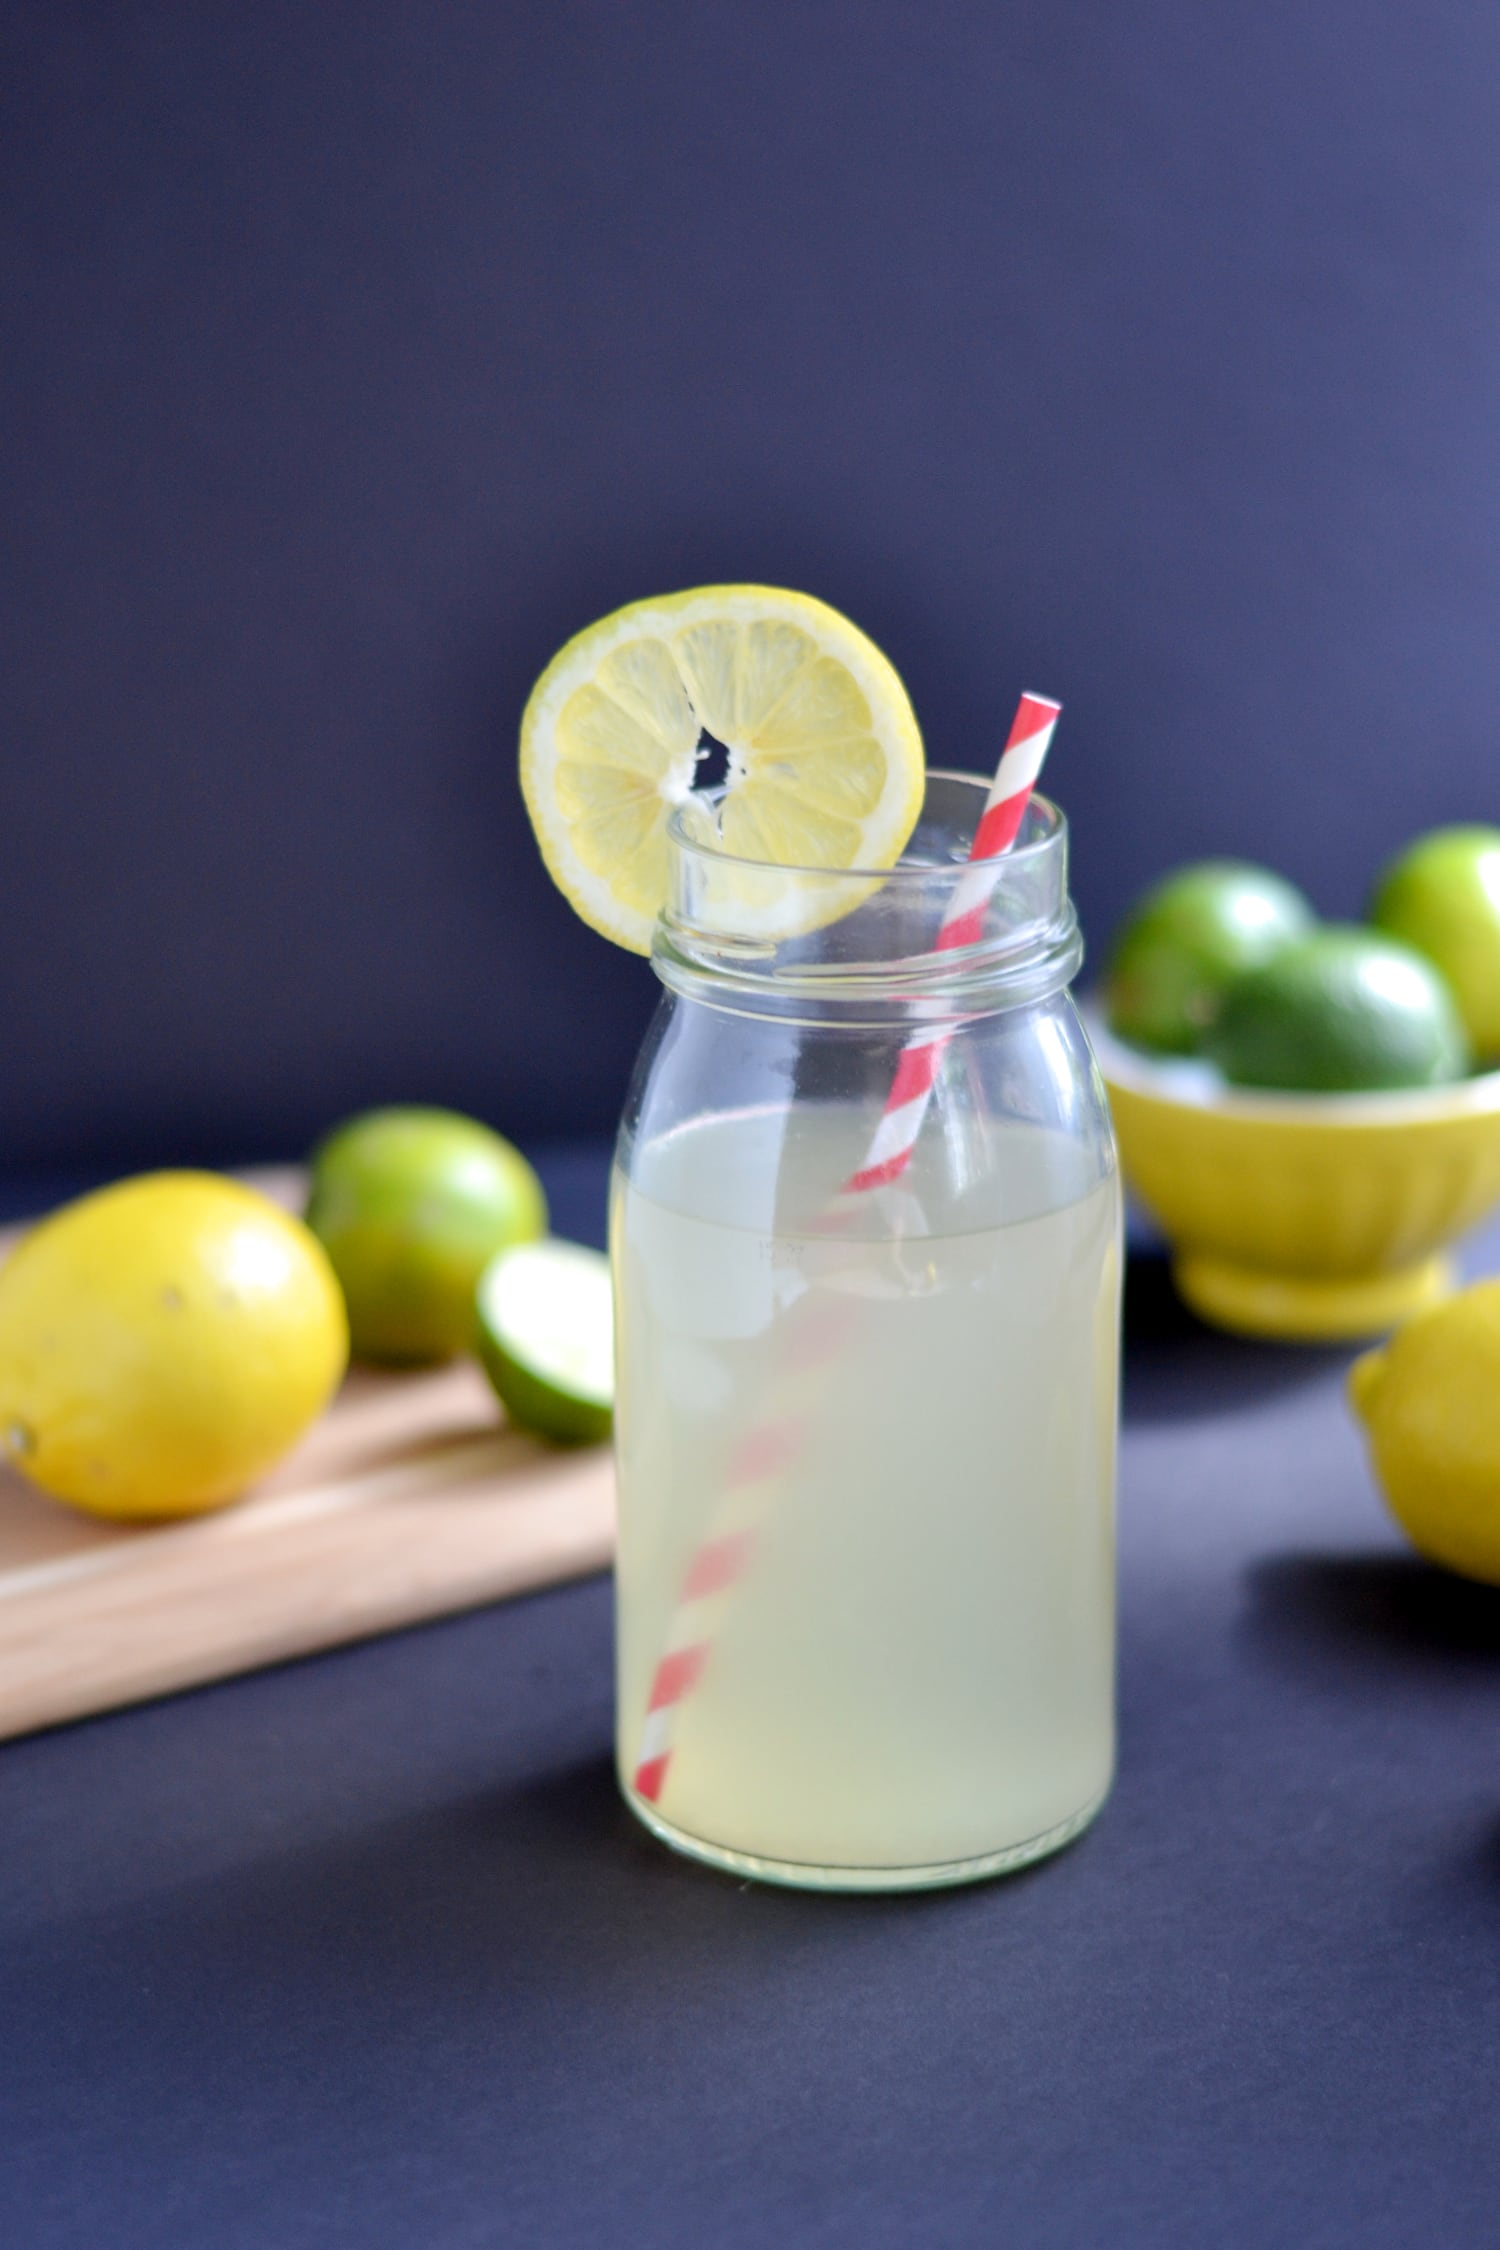 glass of homemade electrolyte drink with lemons and limes around it